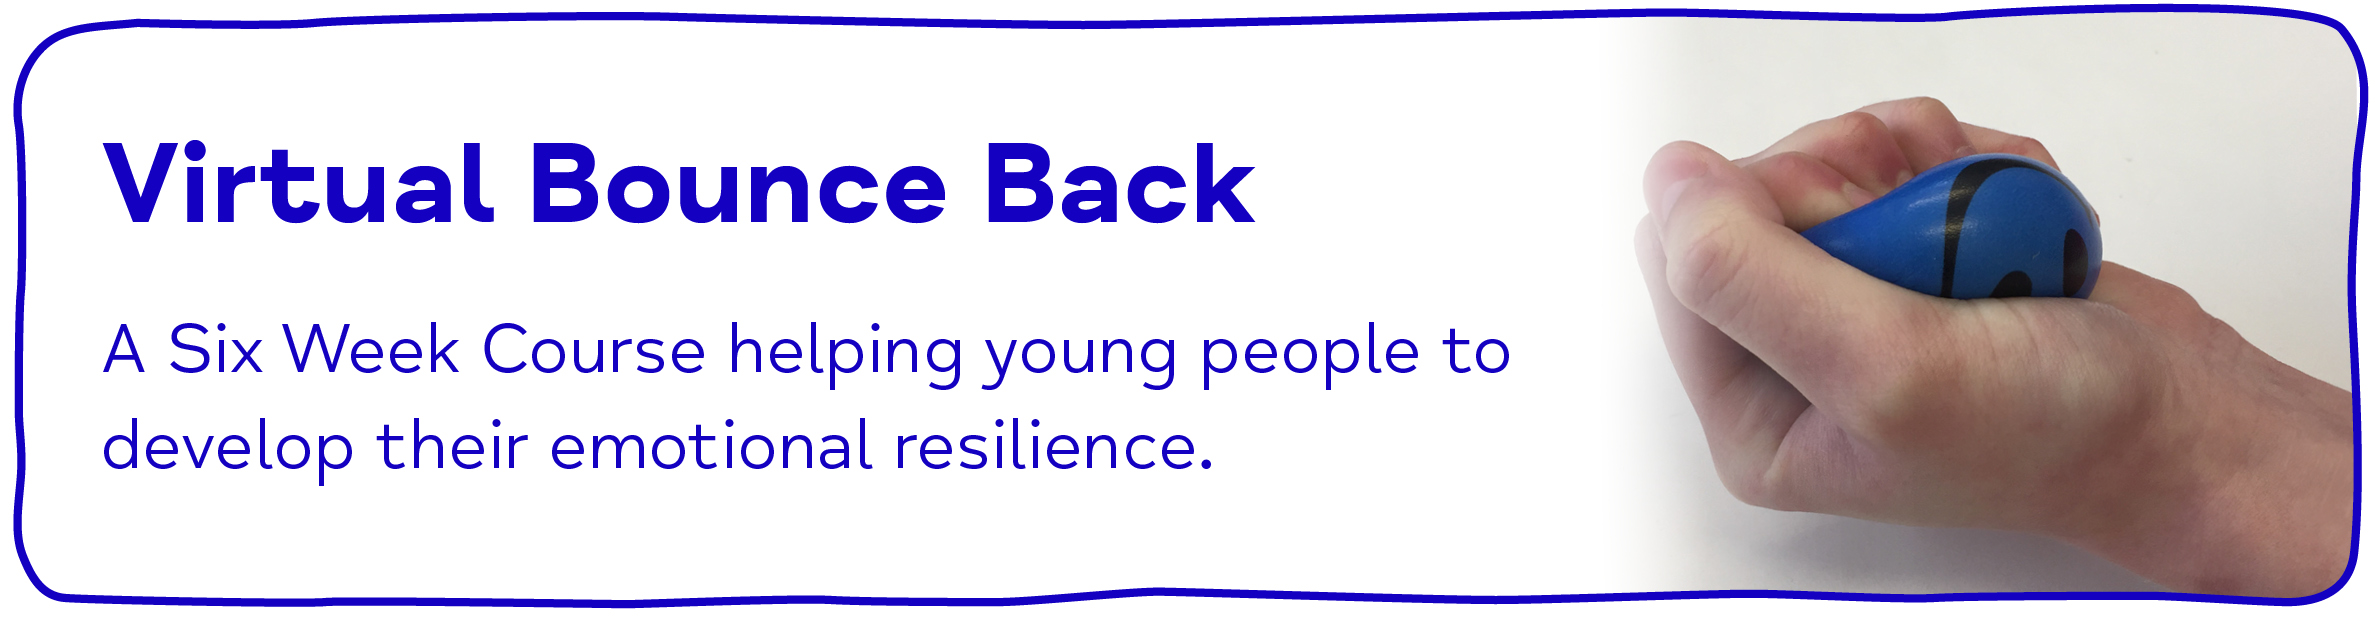 Virtual Bounce Back - A Six Week Course helping young people to develop their emotional resilience.